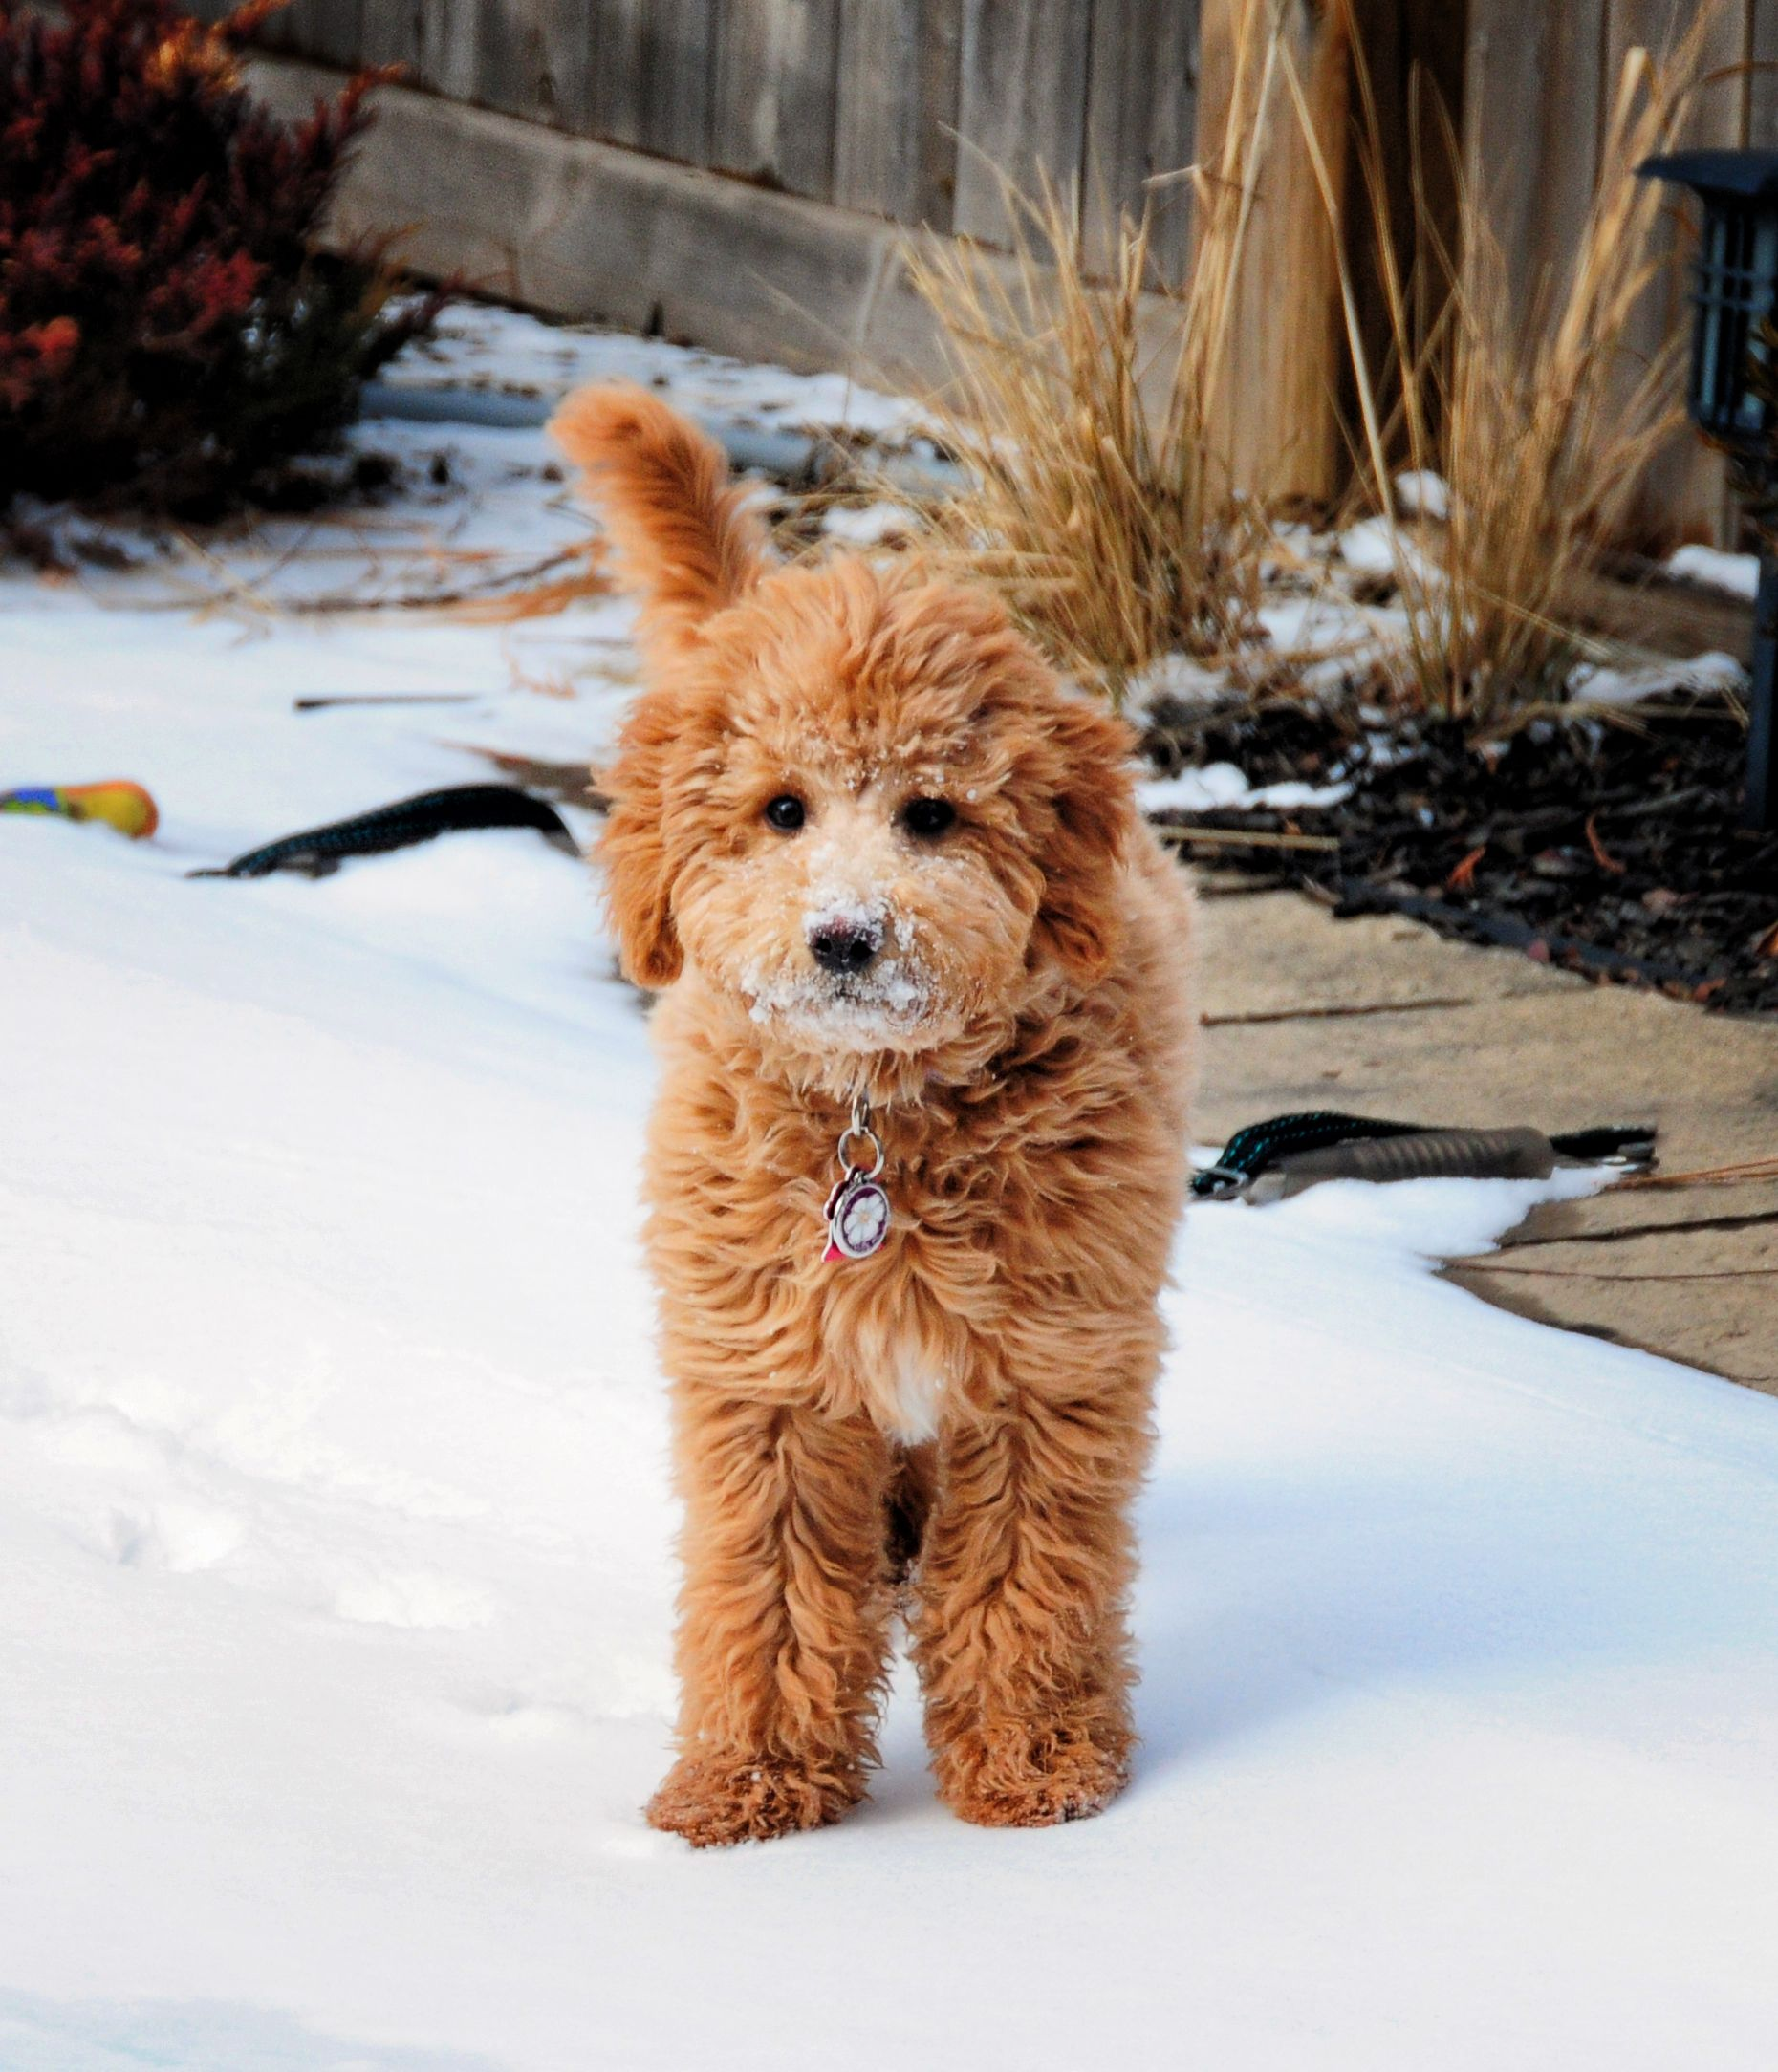 Zolo the Mini Goldendoodle F1b Goldendoodle puppy